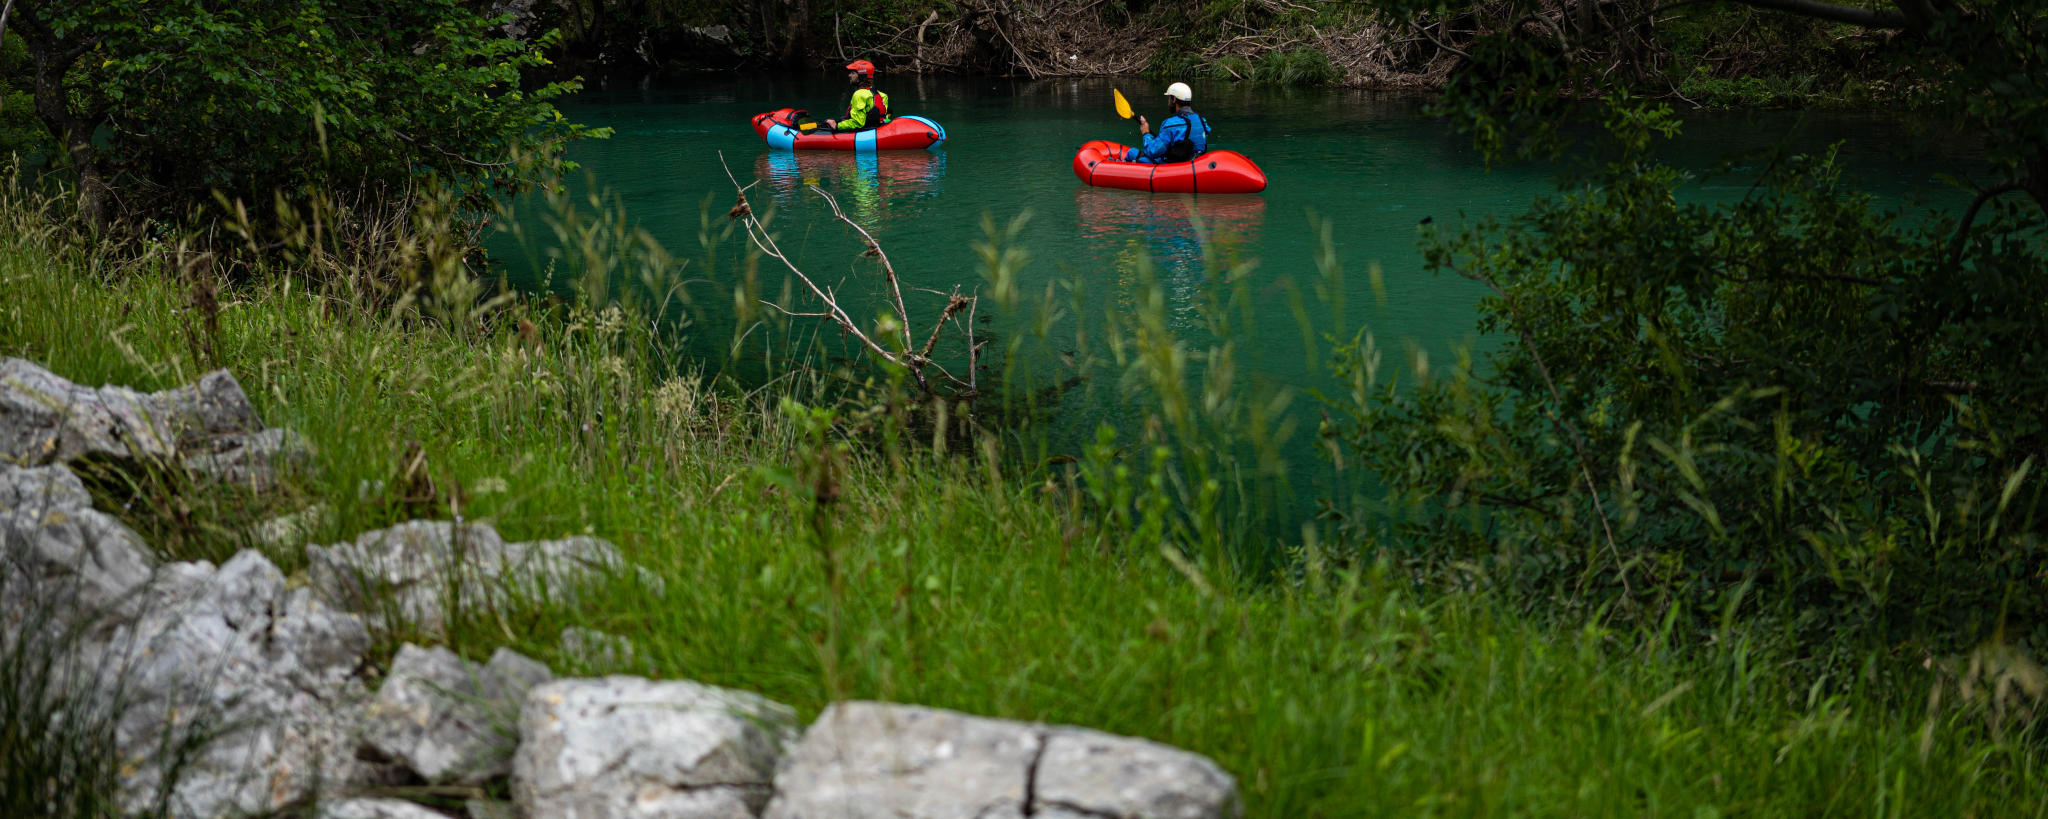 Packrafting Zrmanja River Croatia